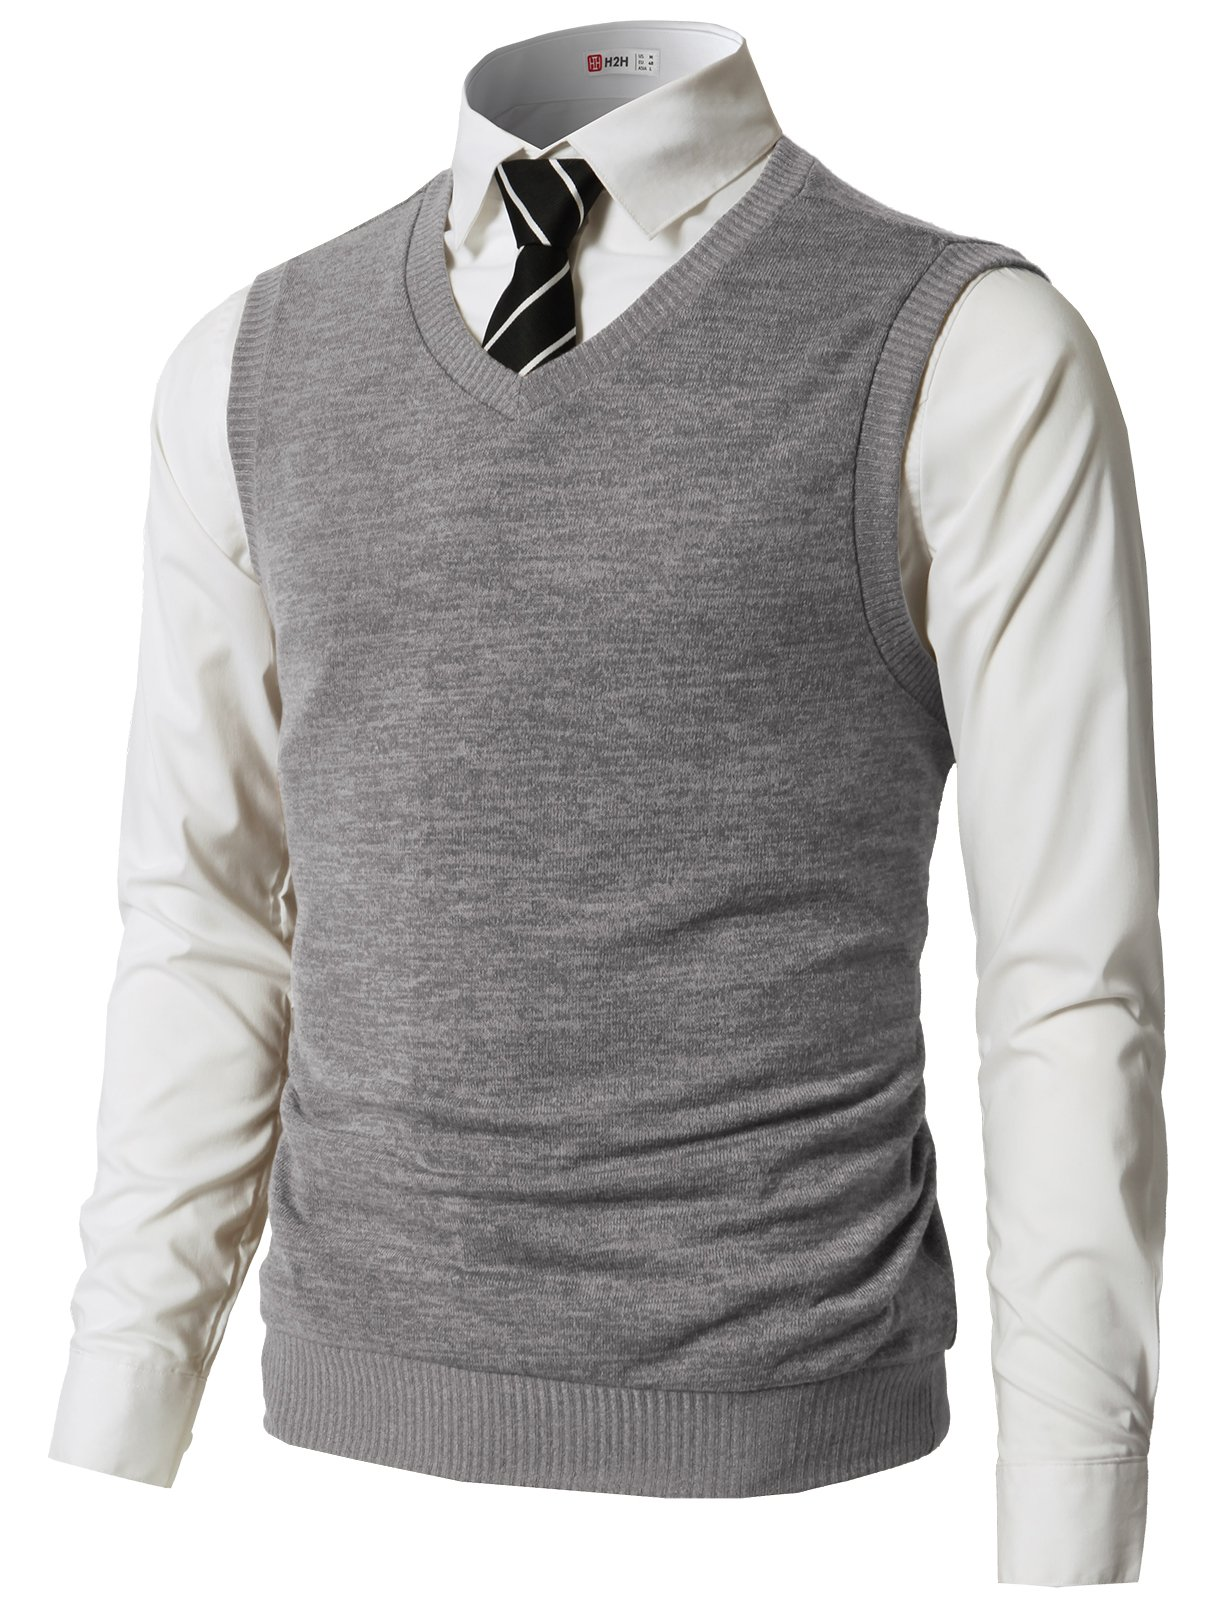 H2H Mens Knitted Sweater Two Buttons Henley Vest Gray US XL/Asia 2XL (CMOV042)